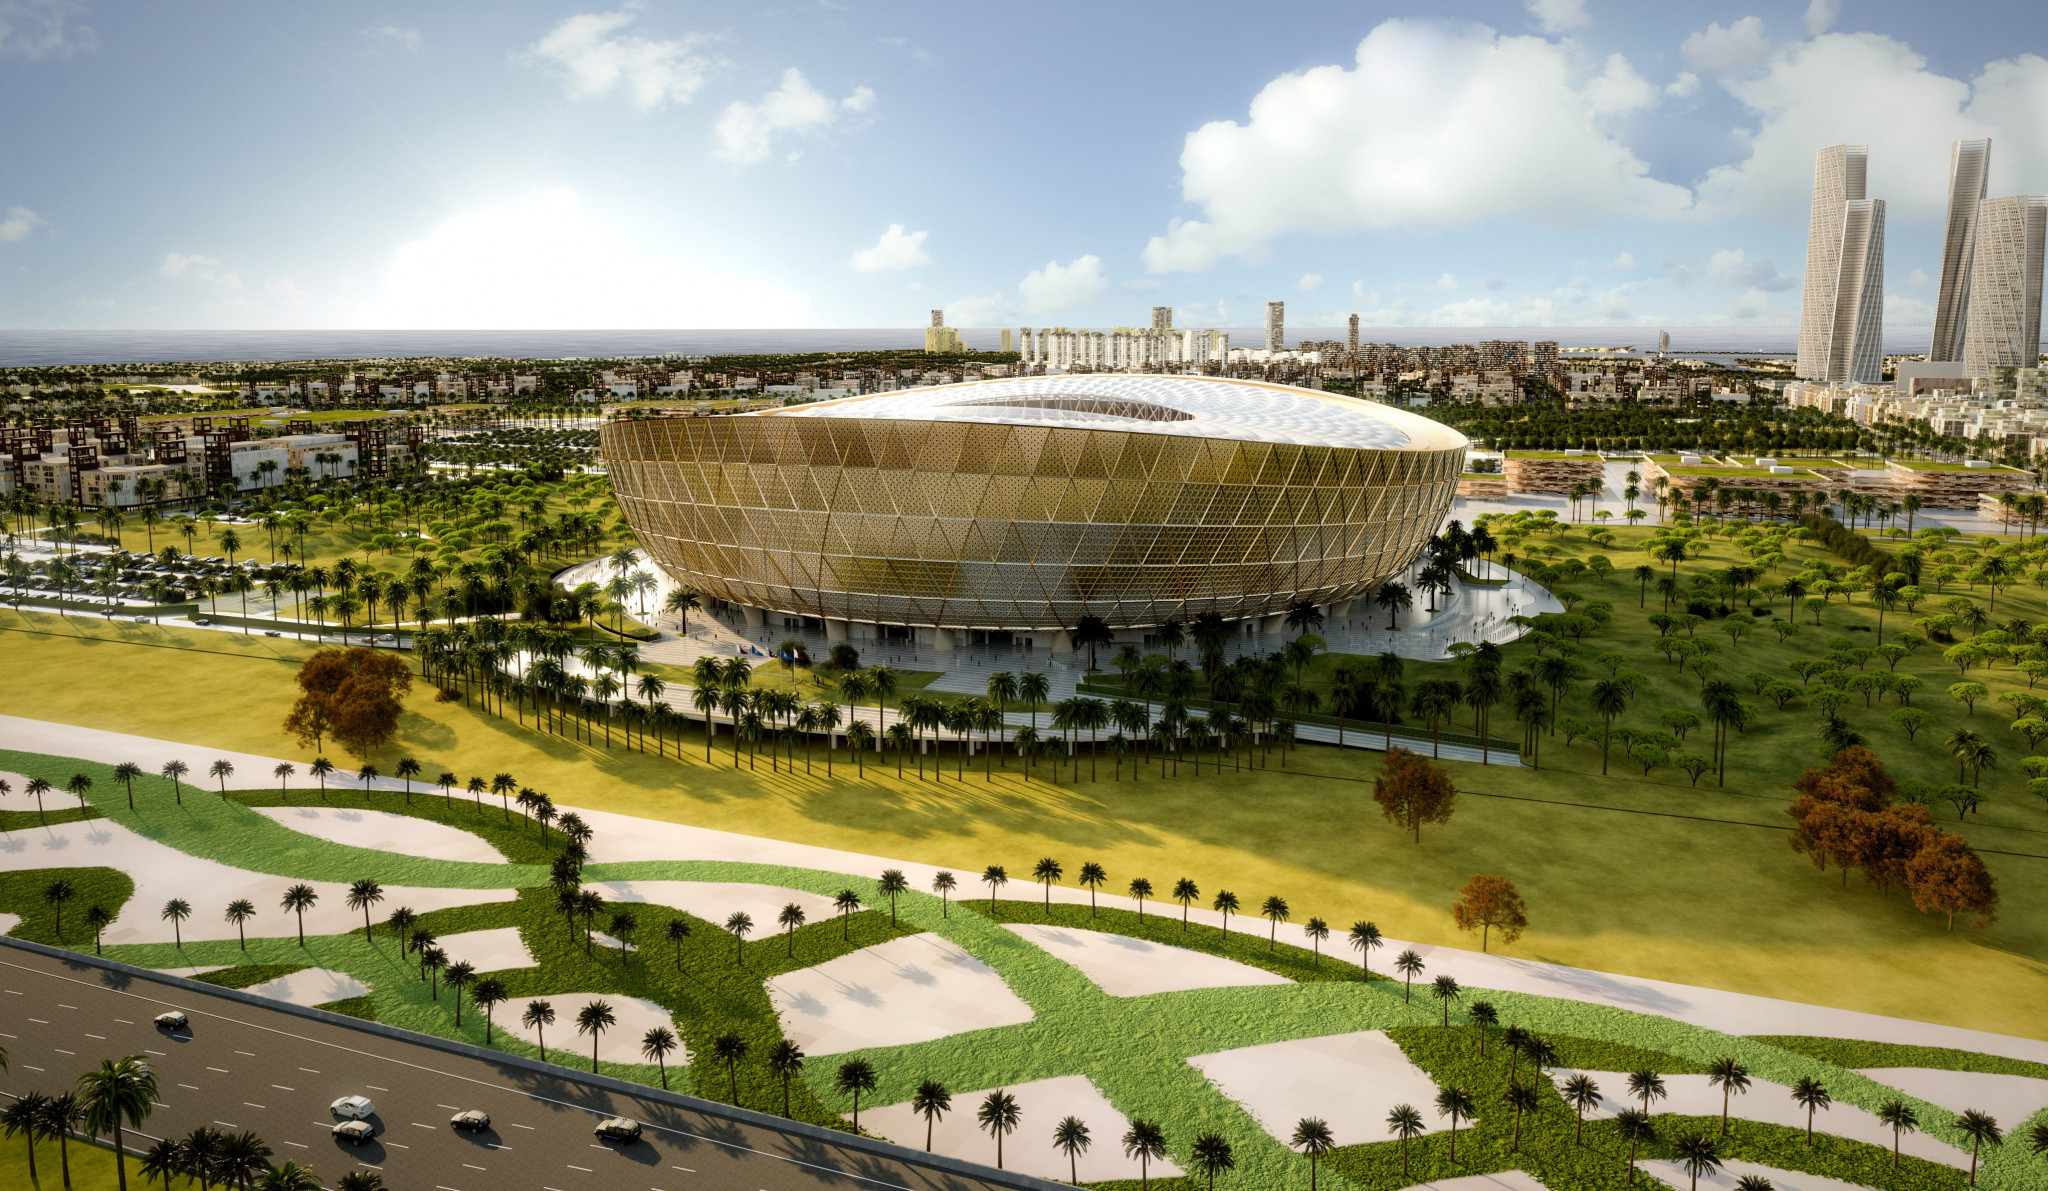 Qatar 2022 reveal design of Lusail Stadium for World Cup